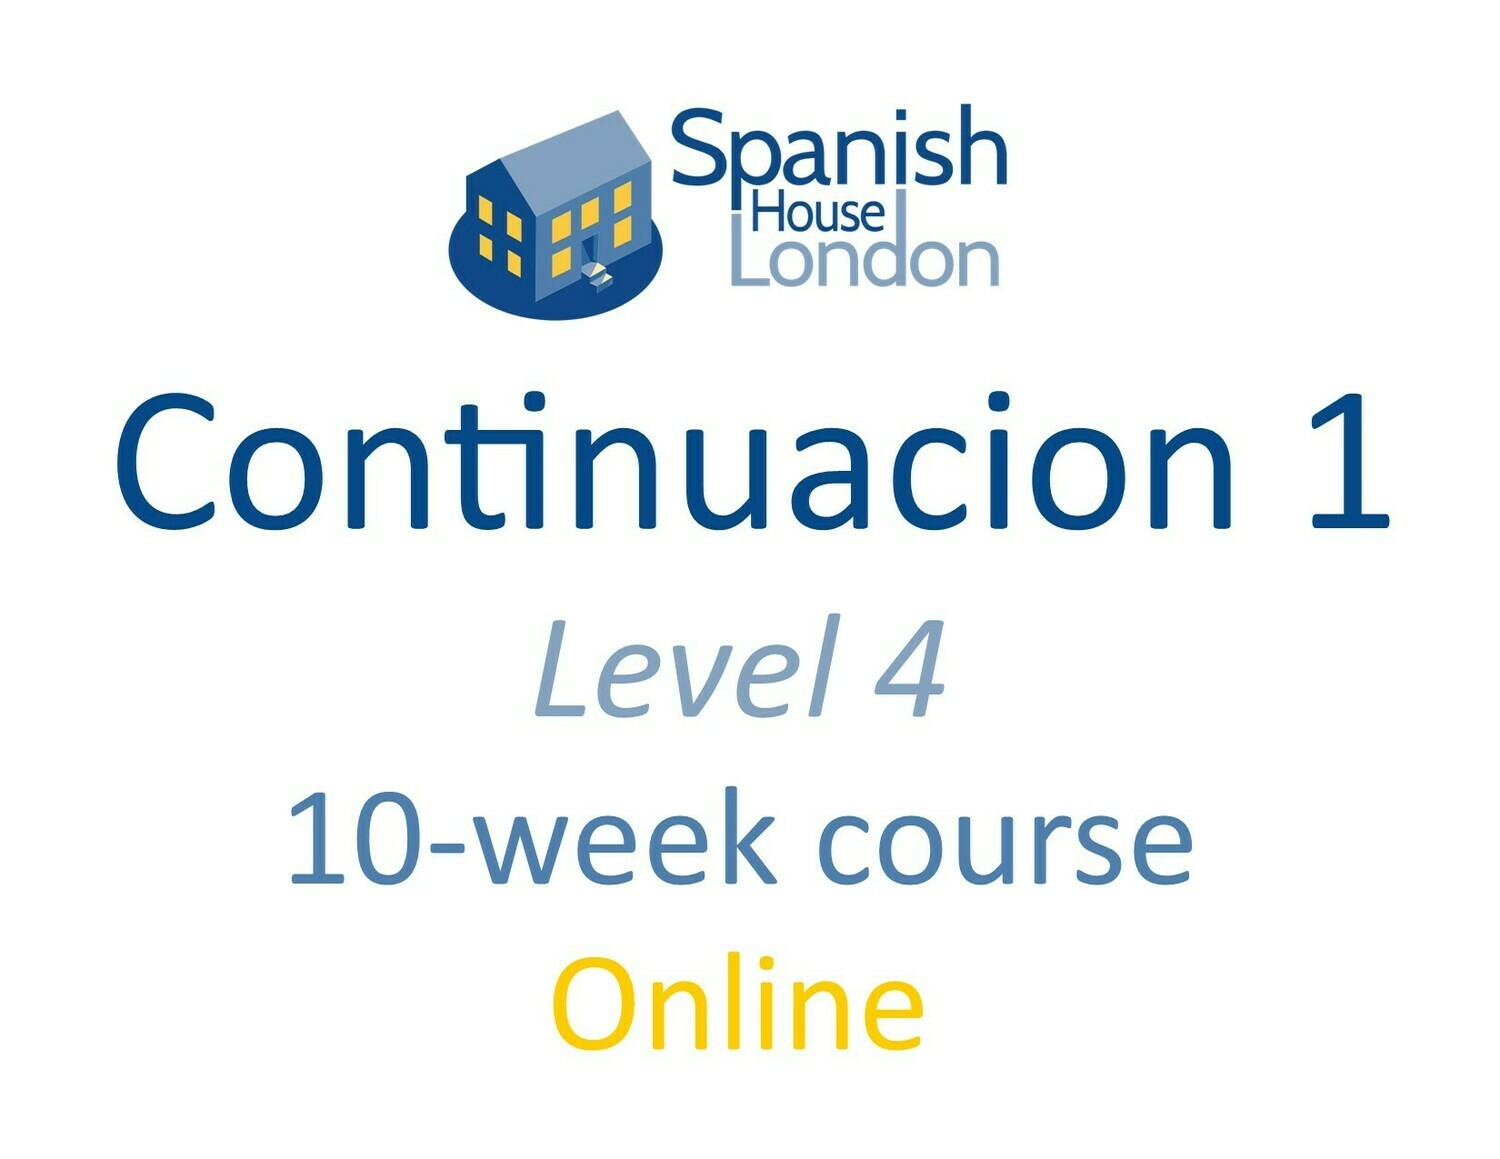 Continuacion 1 Course starting on 20th May at 6pm